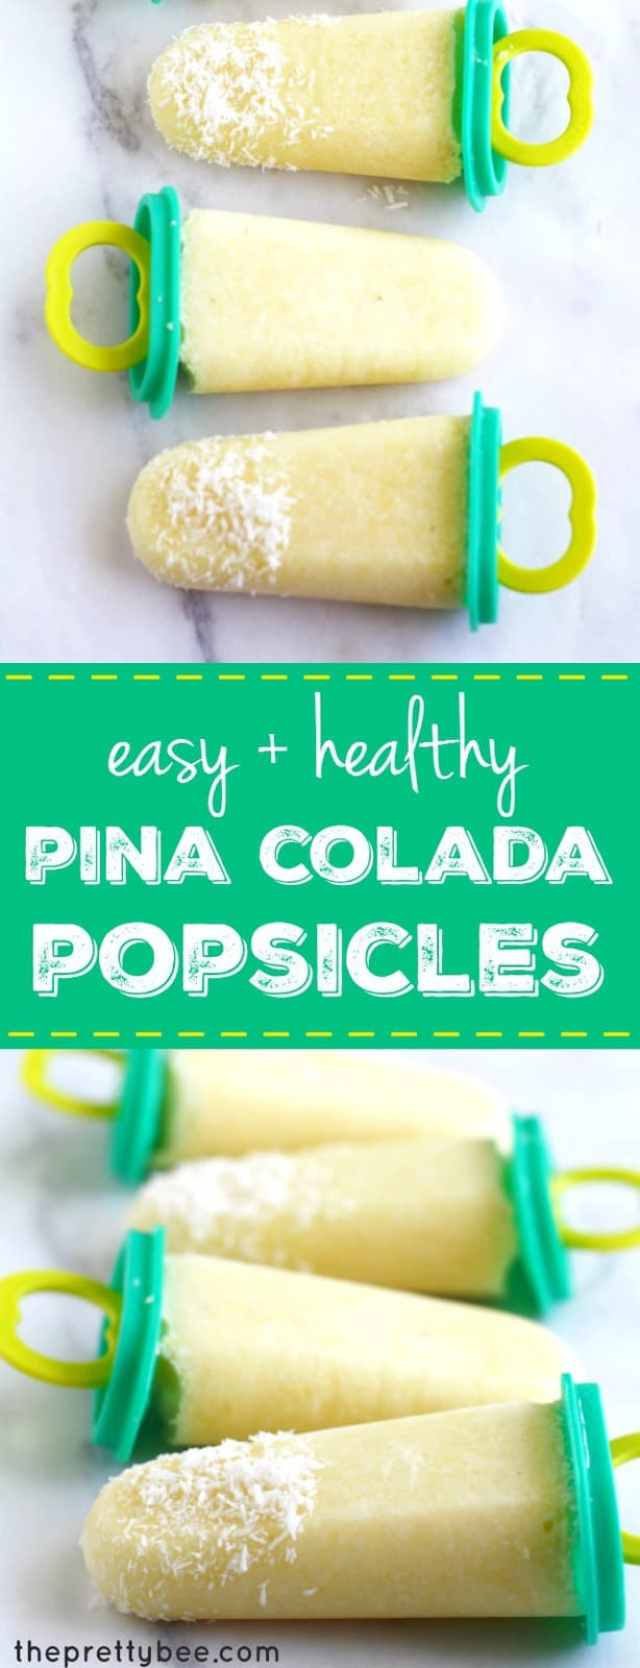 This recipe for pina colada popsicles is a must for summer! Just three ingredients, and so delicious!